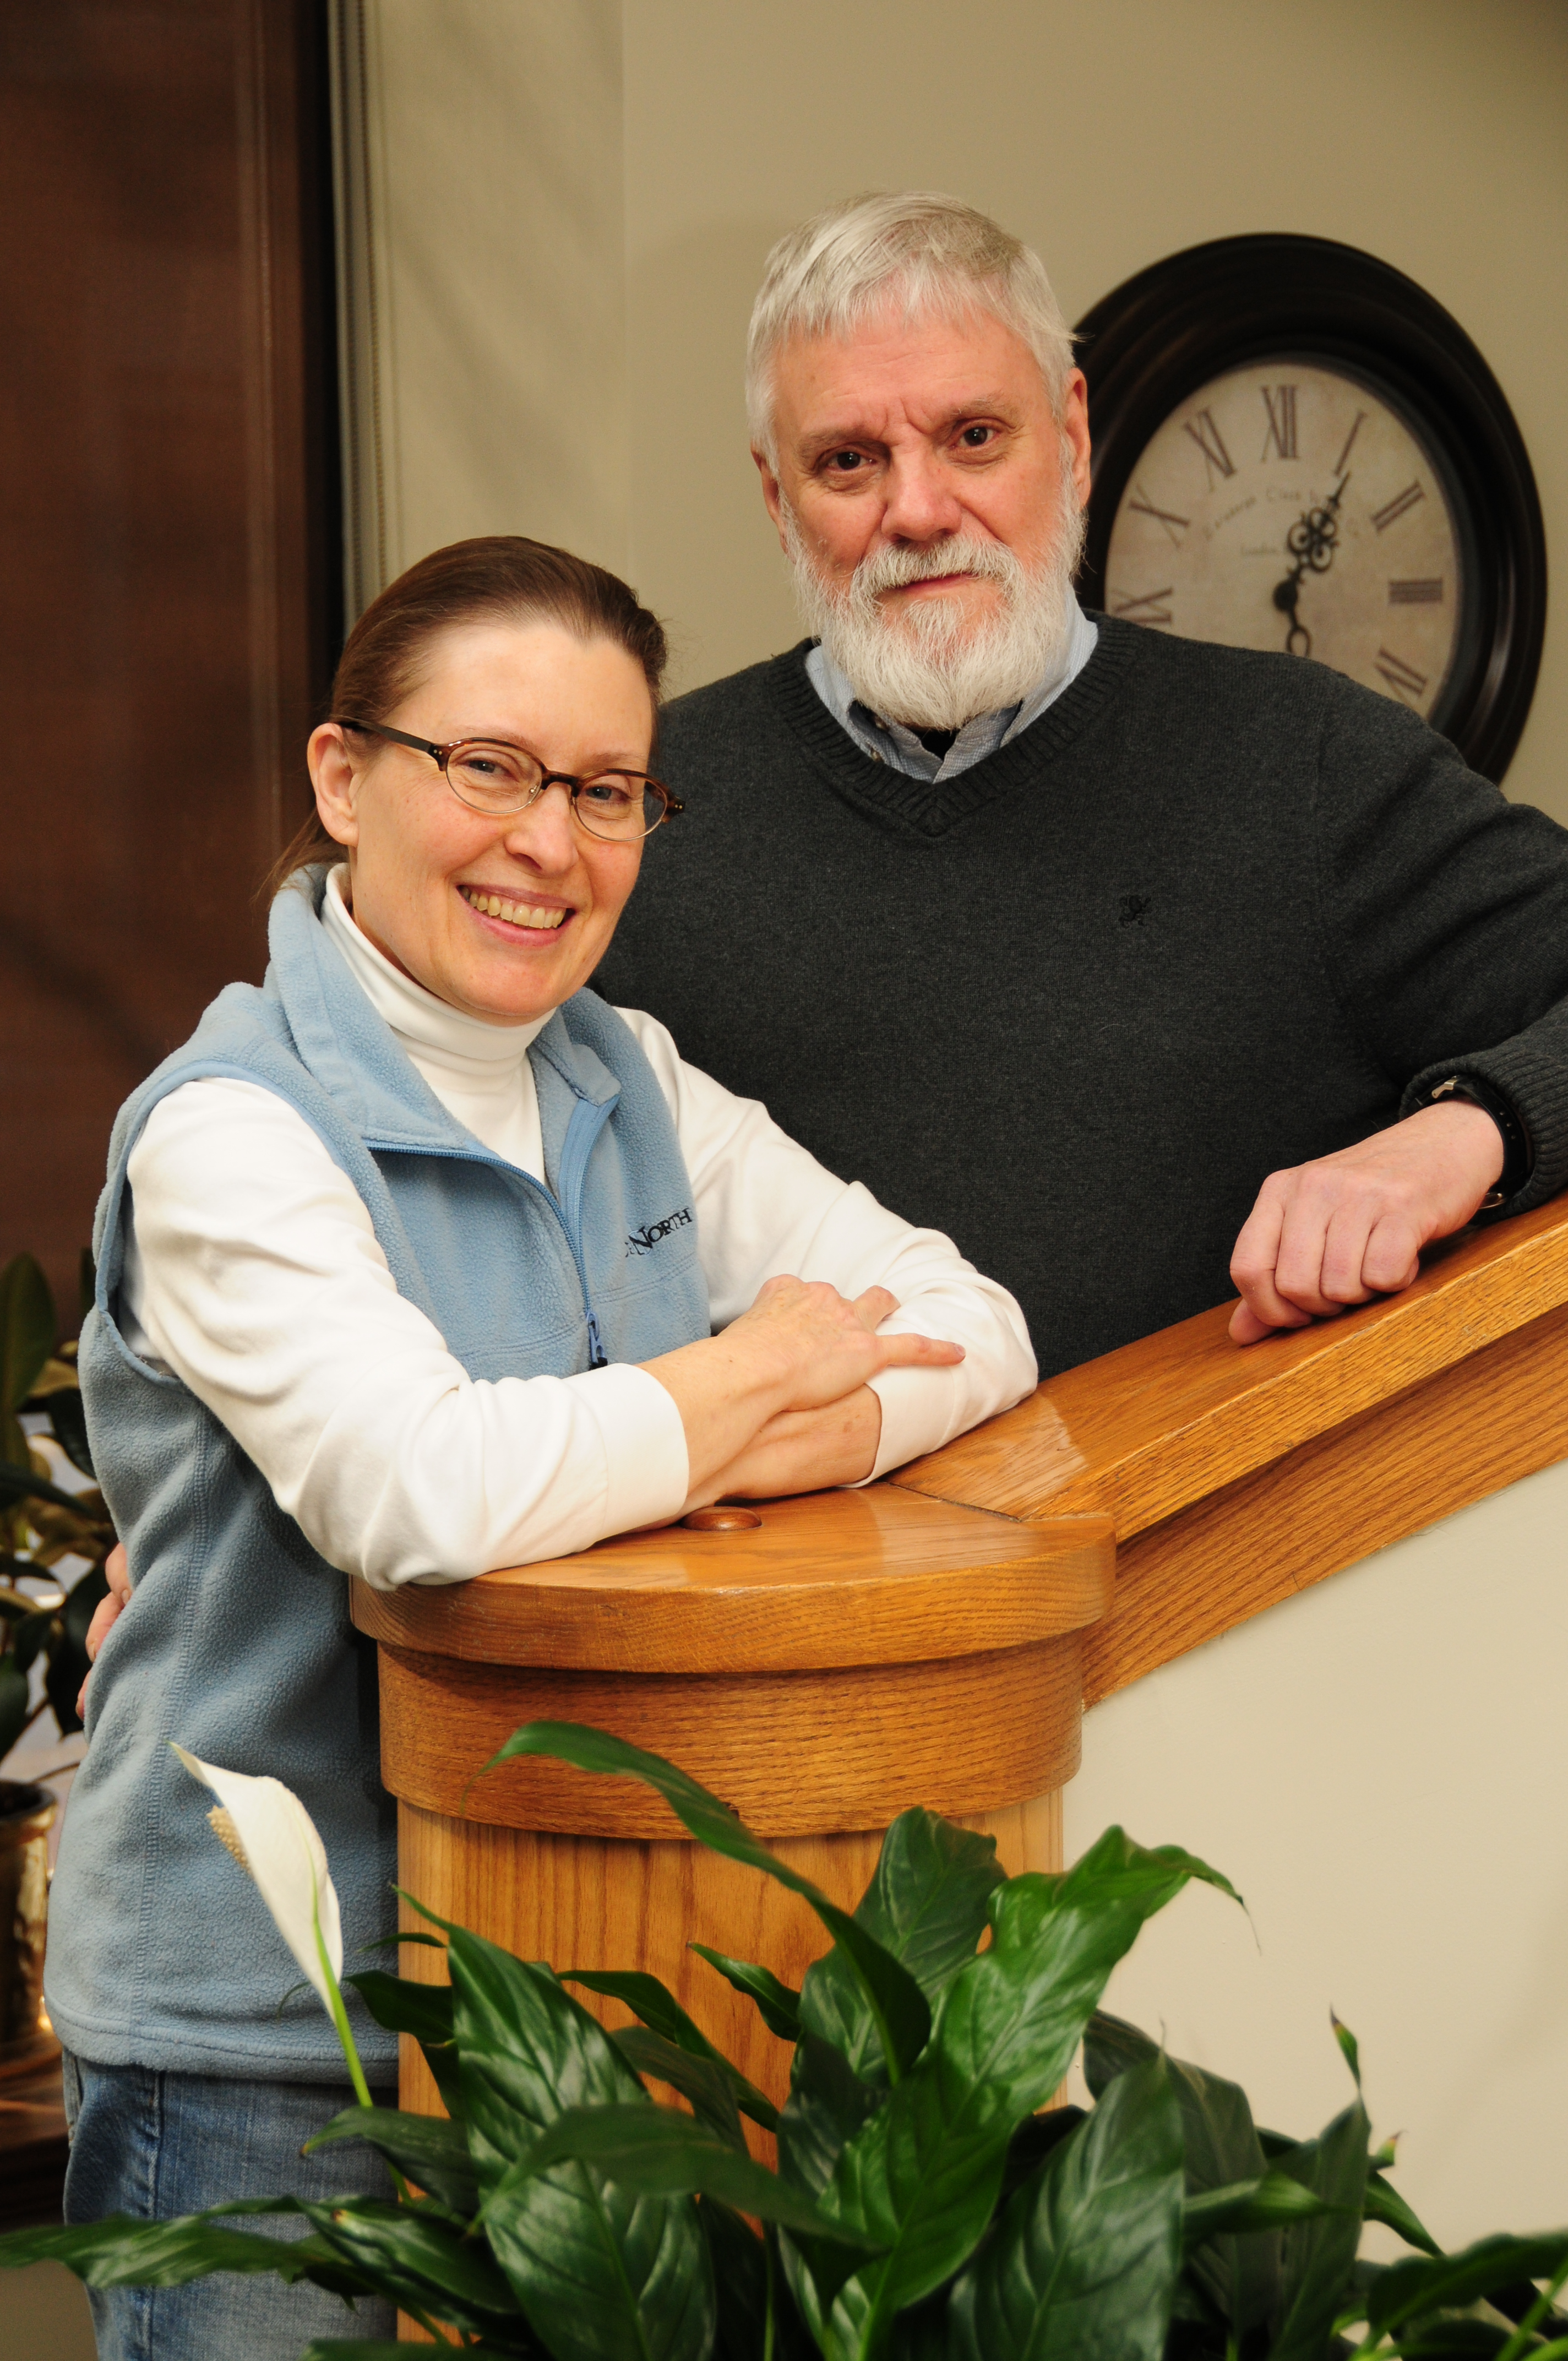 Fritz and Gretchen Mellberg Discover a New Way of Giving Back to the Community